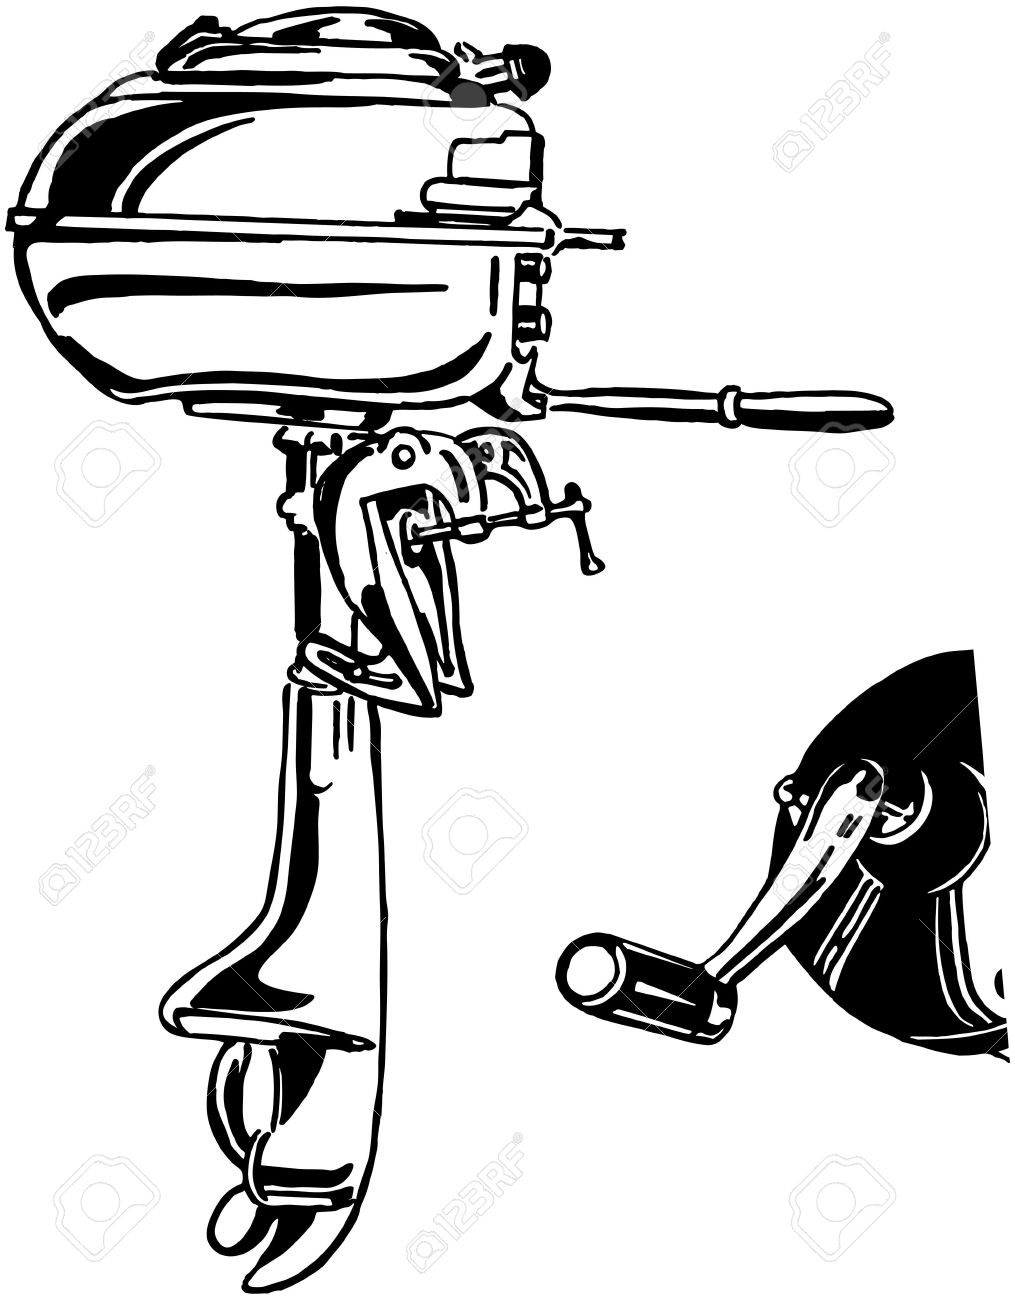 Outboard Motor Royalty Free Cliparts, Vectors, And Stock.